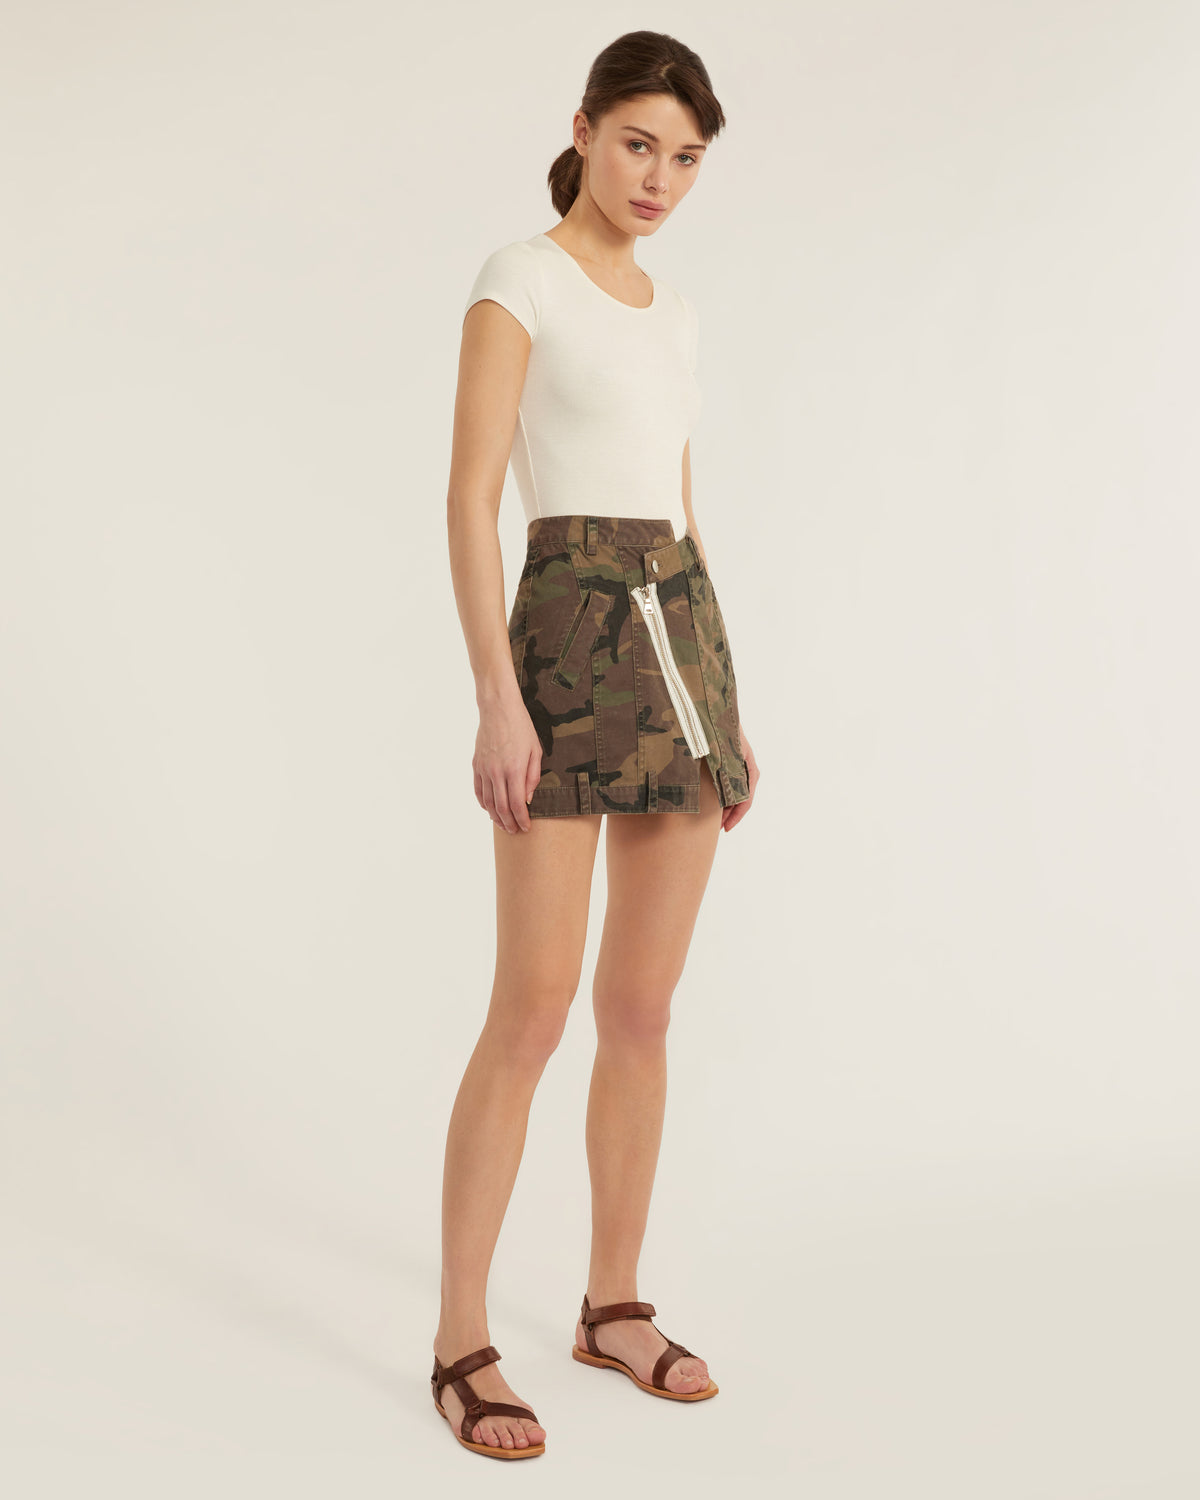 Eliza Canvas Zip Front Camo Skirt in Woodland Camo